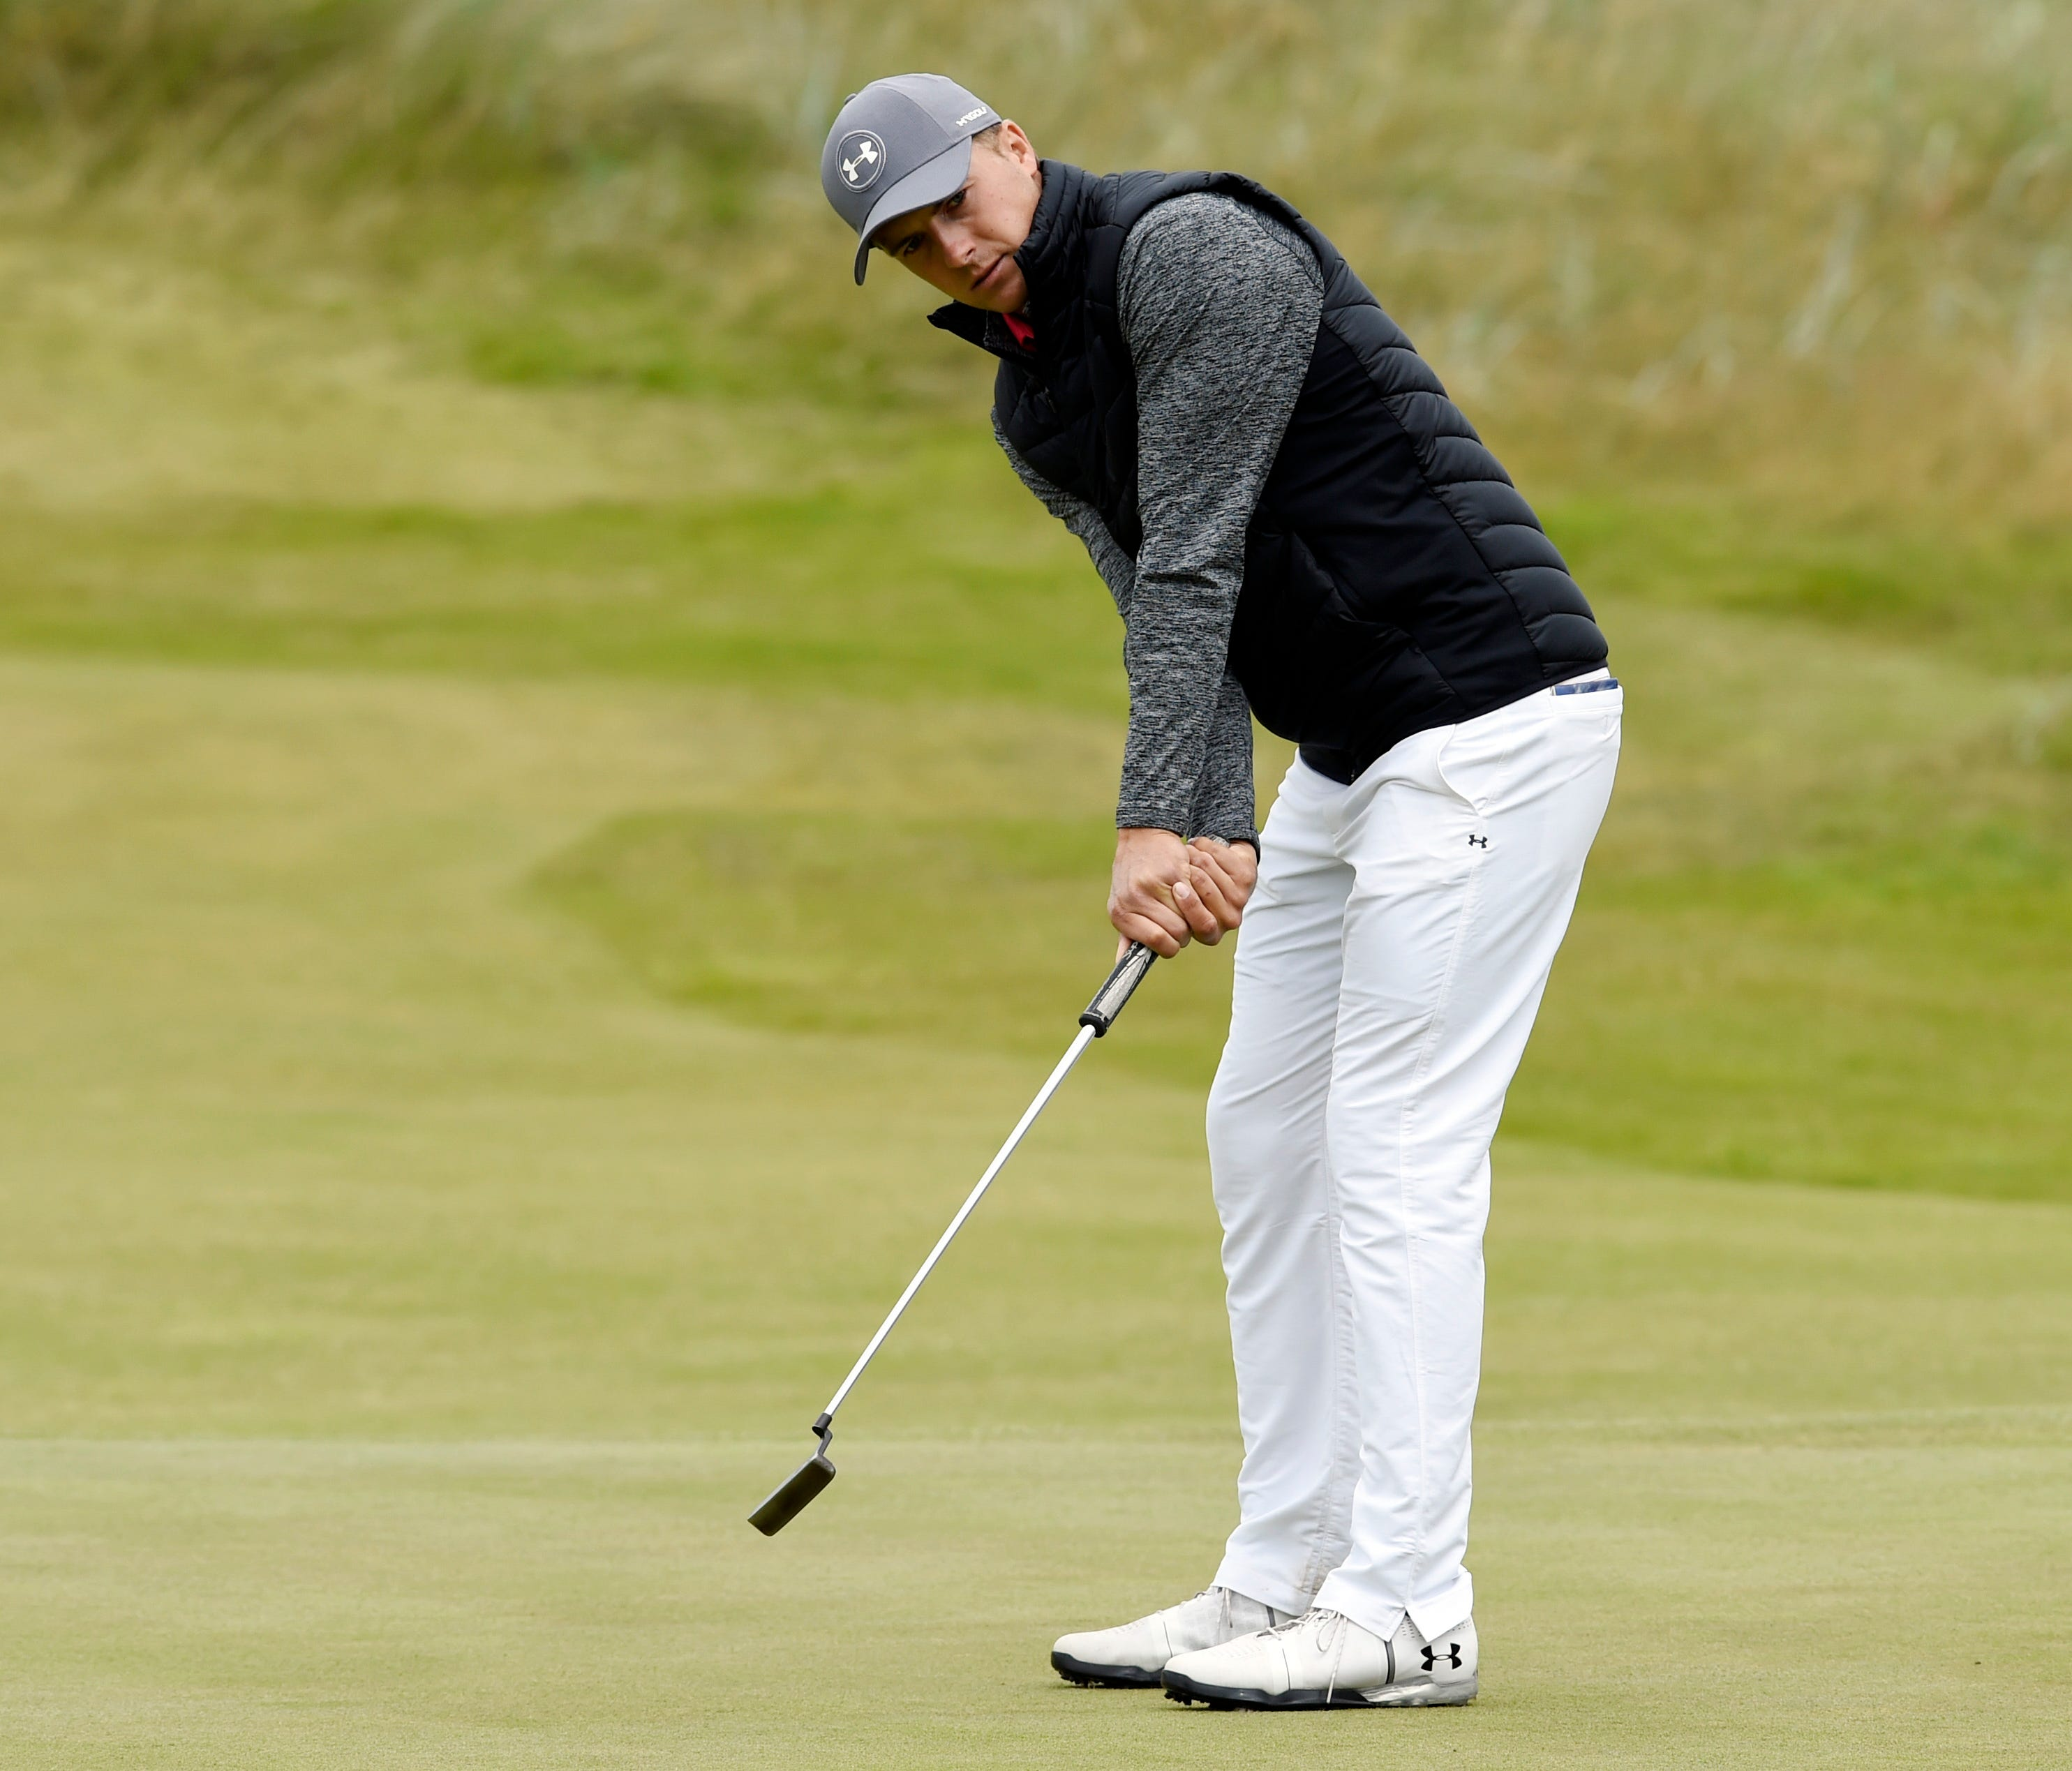 Jordan Spieth reacts to his putt on the 14th hole during the first round of The 146th Open Championship golf tournament at Royal Birkdale Golf Club.